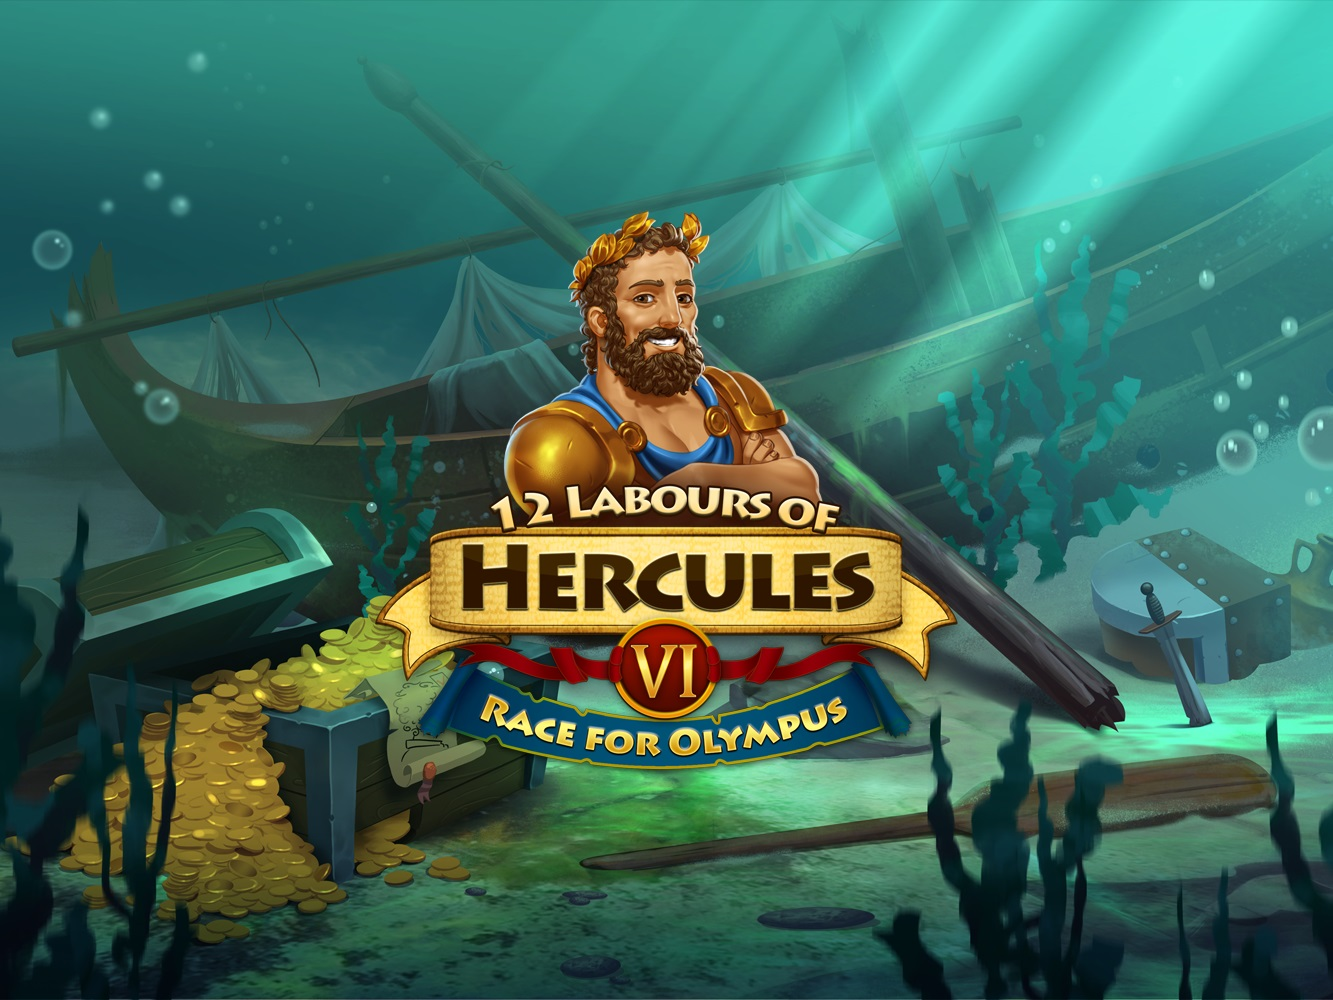 #12 Labours of Hercules VI: Race for Olympus